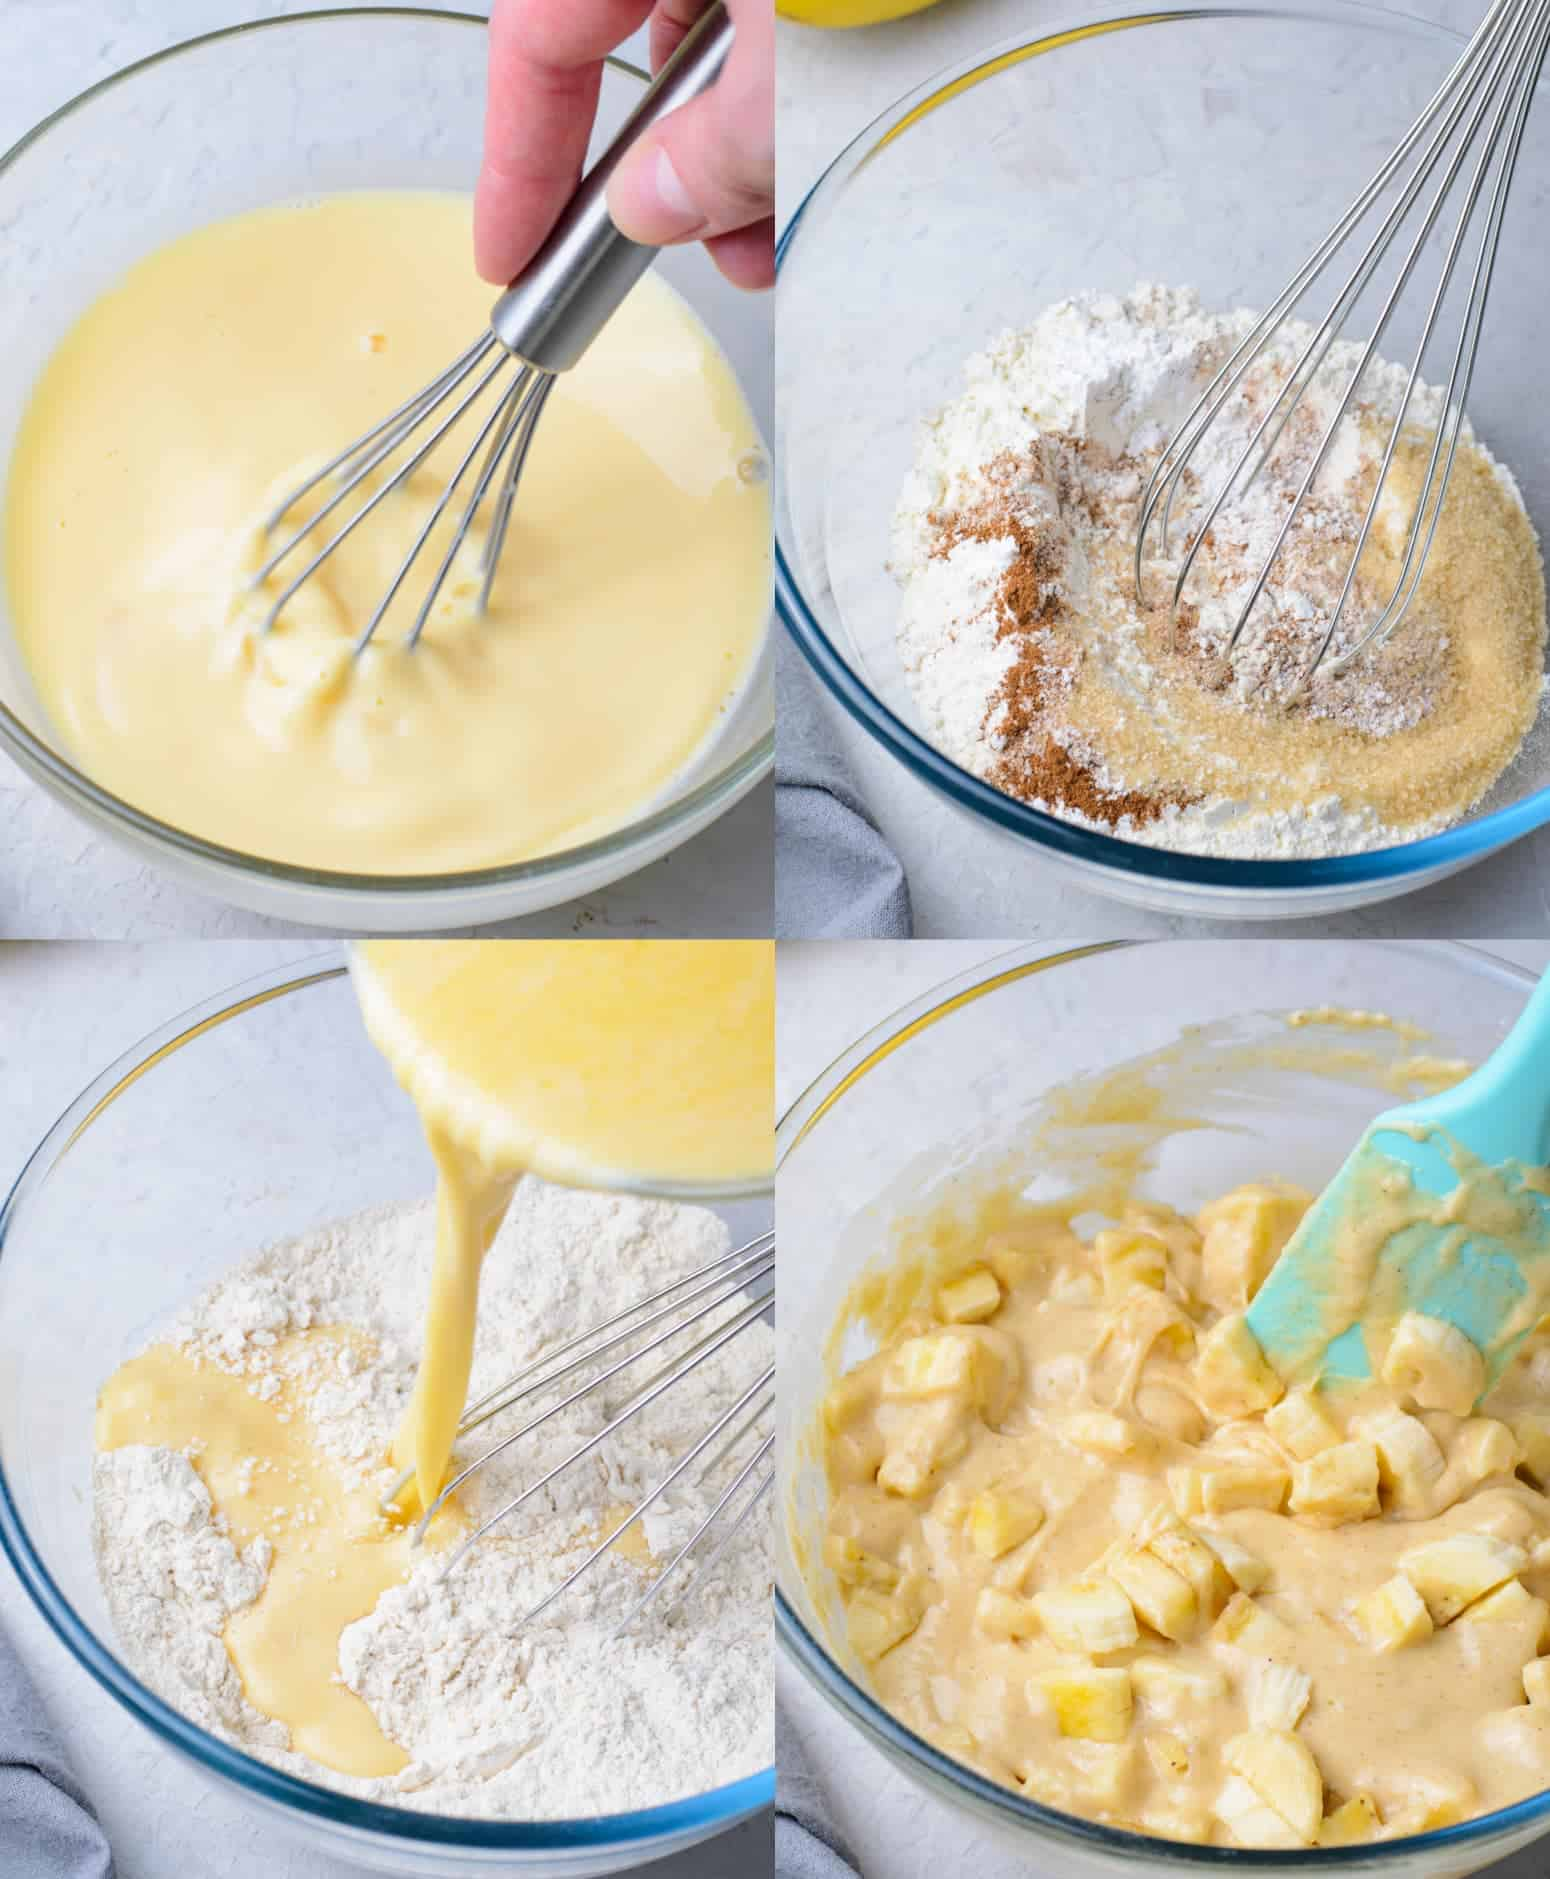 Four process photot. First one, all the wet ingredients mixed together with a whisk. Second one, all the dry ingredients whisked together. Third one, wet ingredients being poured into the dry ingredients. Fourth one, bananas add into the batter.